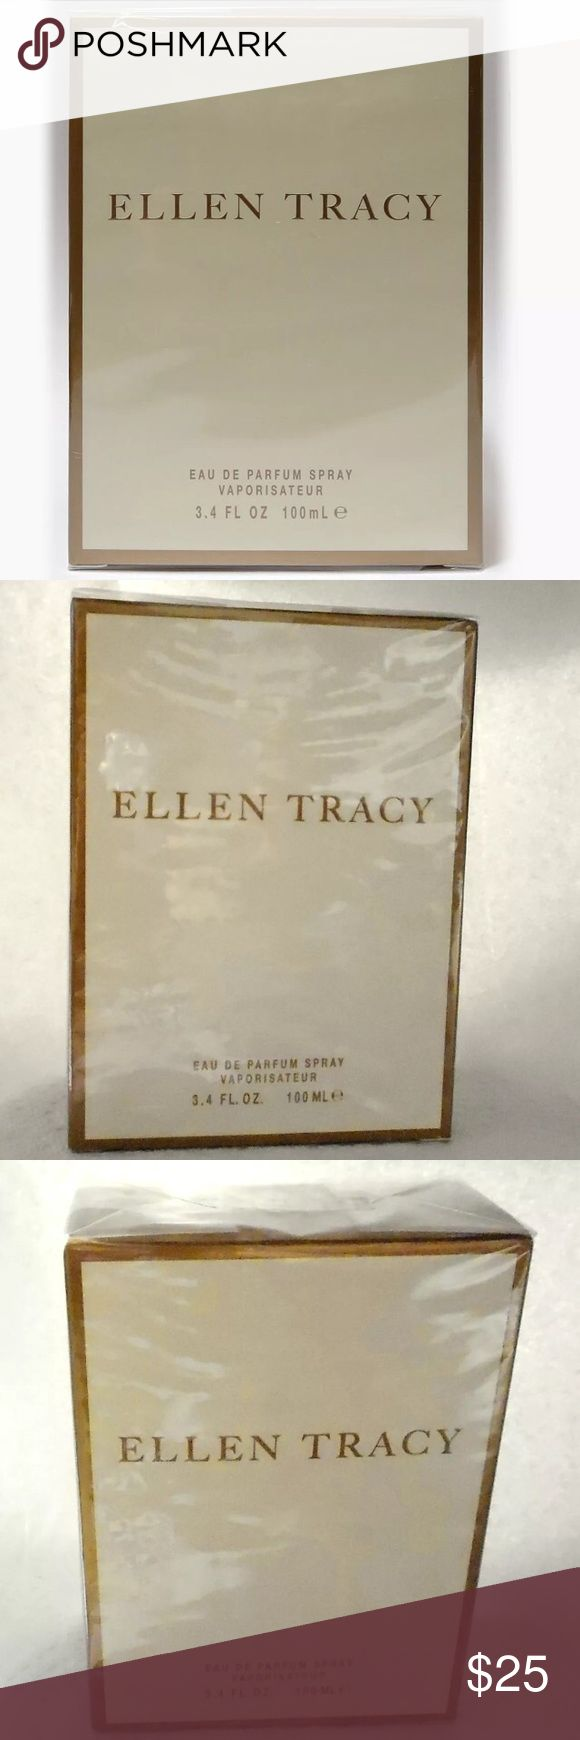 Ellen Tracy by Ellen Tracy Eau De Parfum Spray 3.4 Ellen Tracy By Ellen Tracy For Women Eau De Parfum Spray 3.4 OZ - NIB Sealed  NEW Sealed Pack EAU DE PARFUM SPRAY 3.4 OZ with fragrance notes of oriental flowers and spices with lower woodsy notes. Ellen Tracy Other